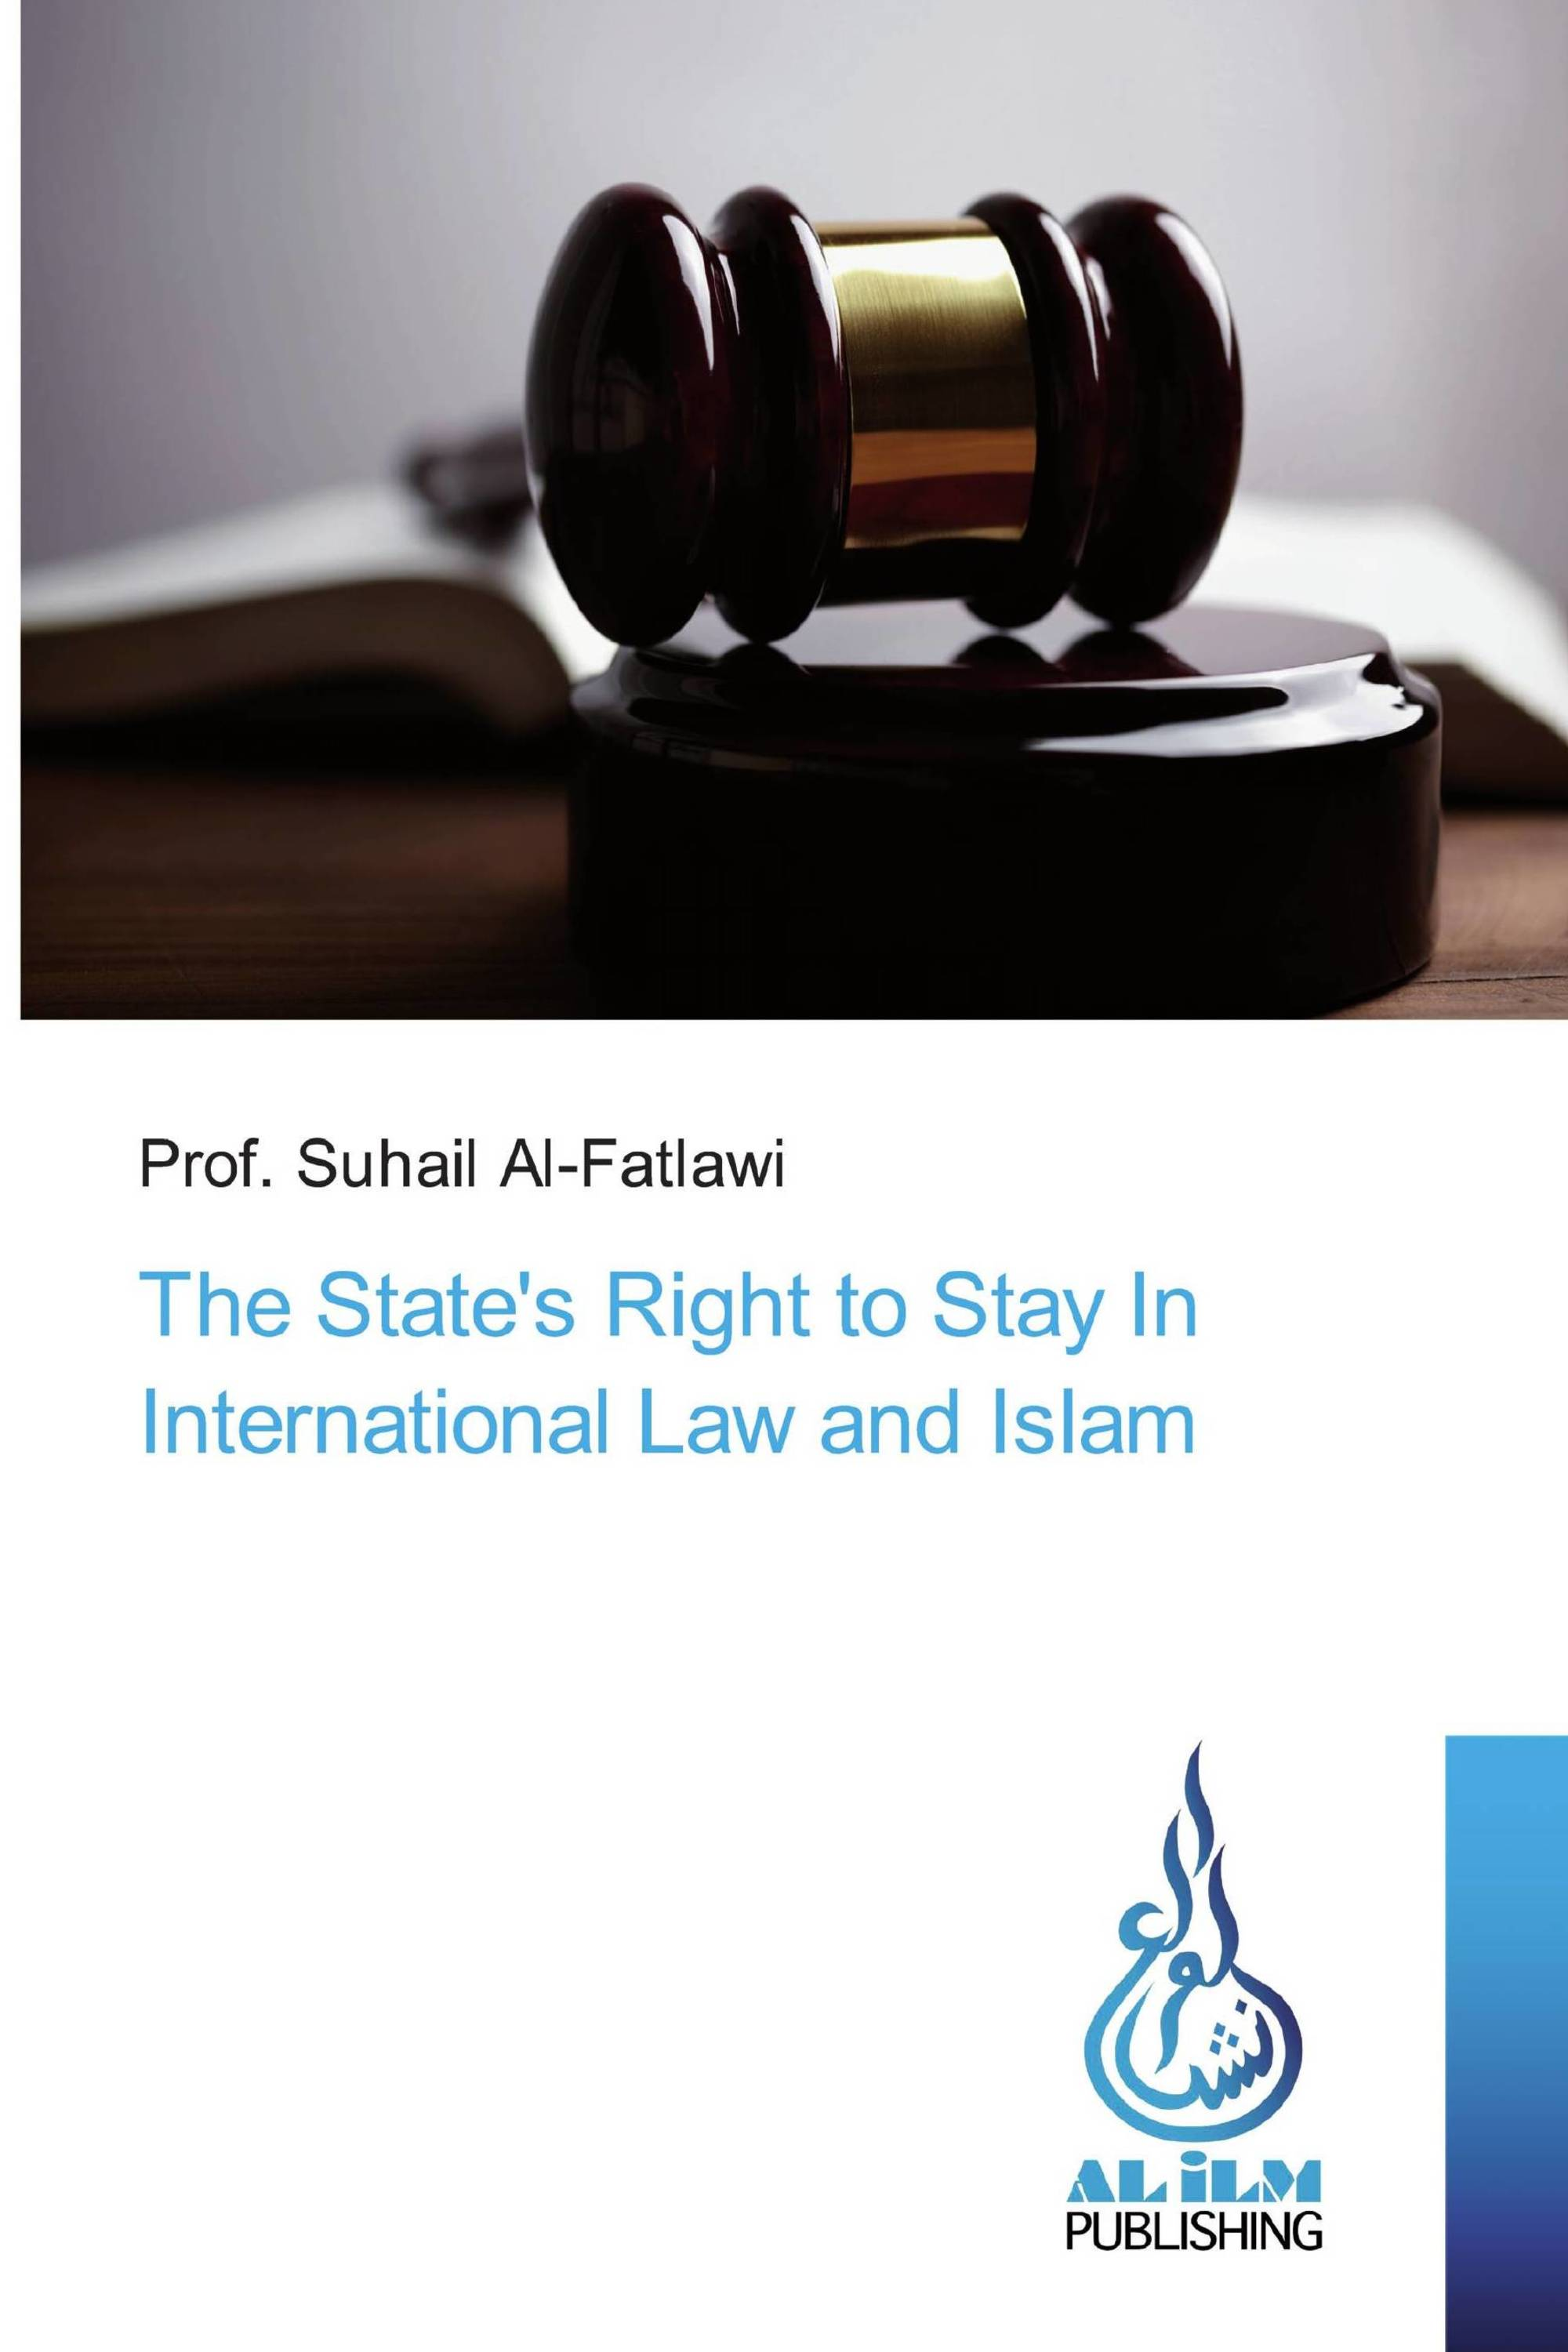 The State's Right to Stay In International Law and Islam